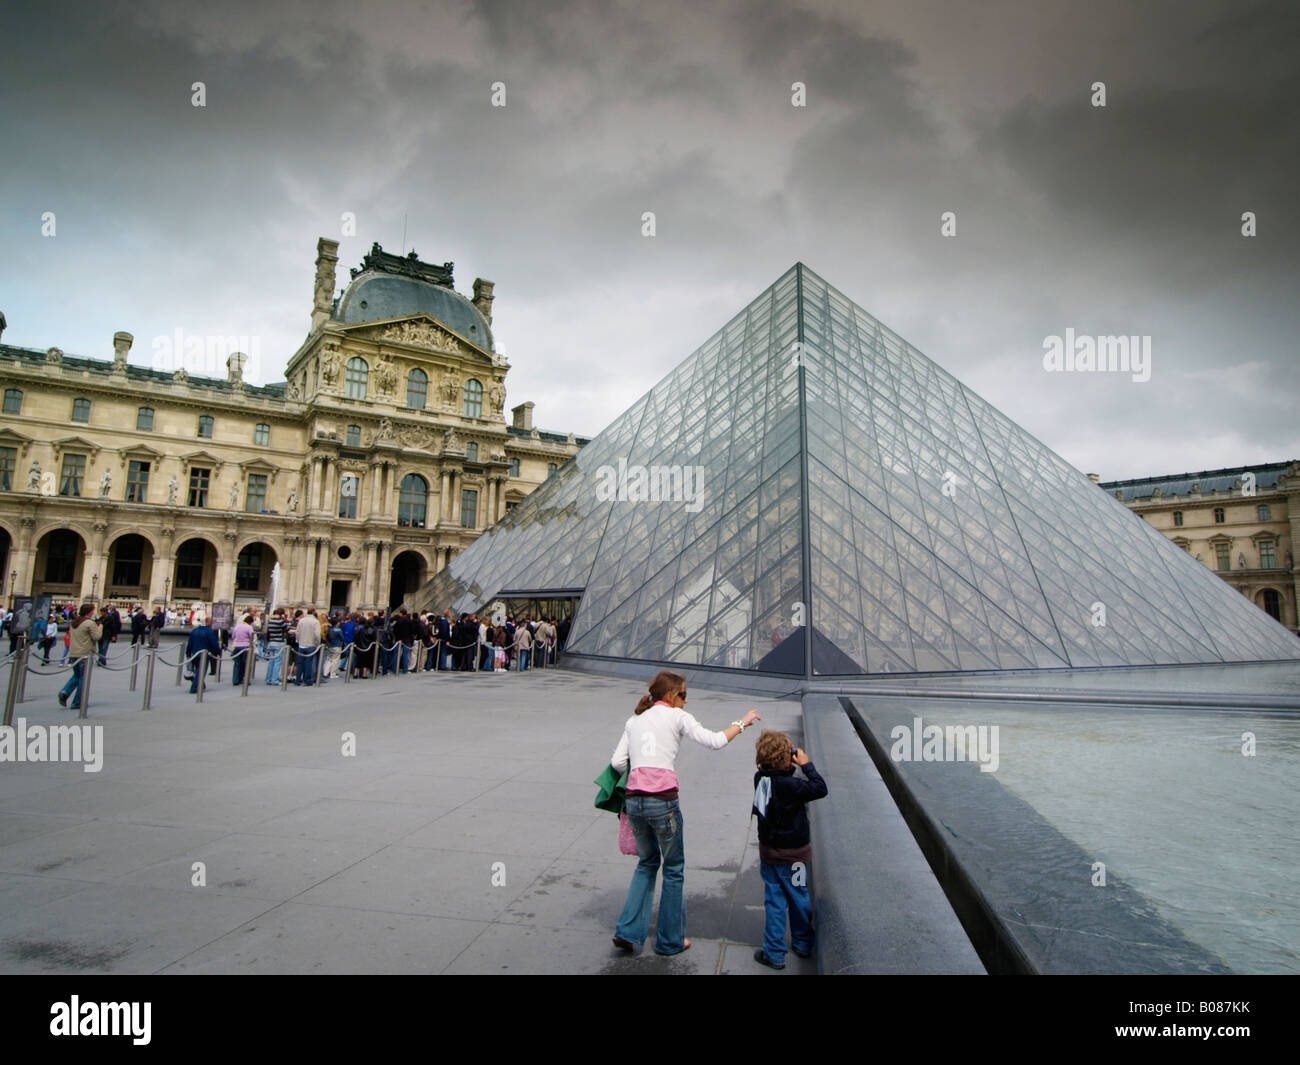 The Pyramid by architect I M Pei at the Louvre museum in Paris France with queue at the museum entrance - Stock Image